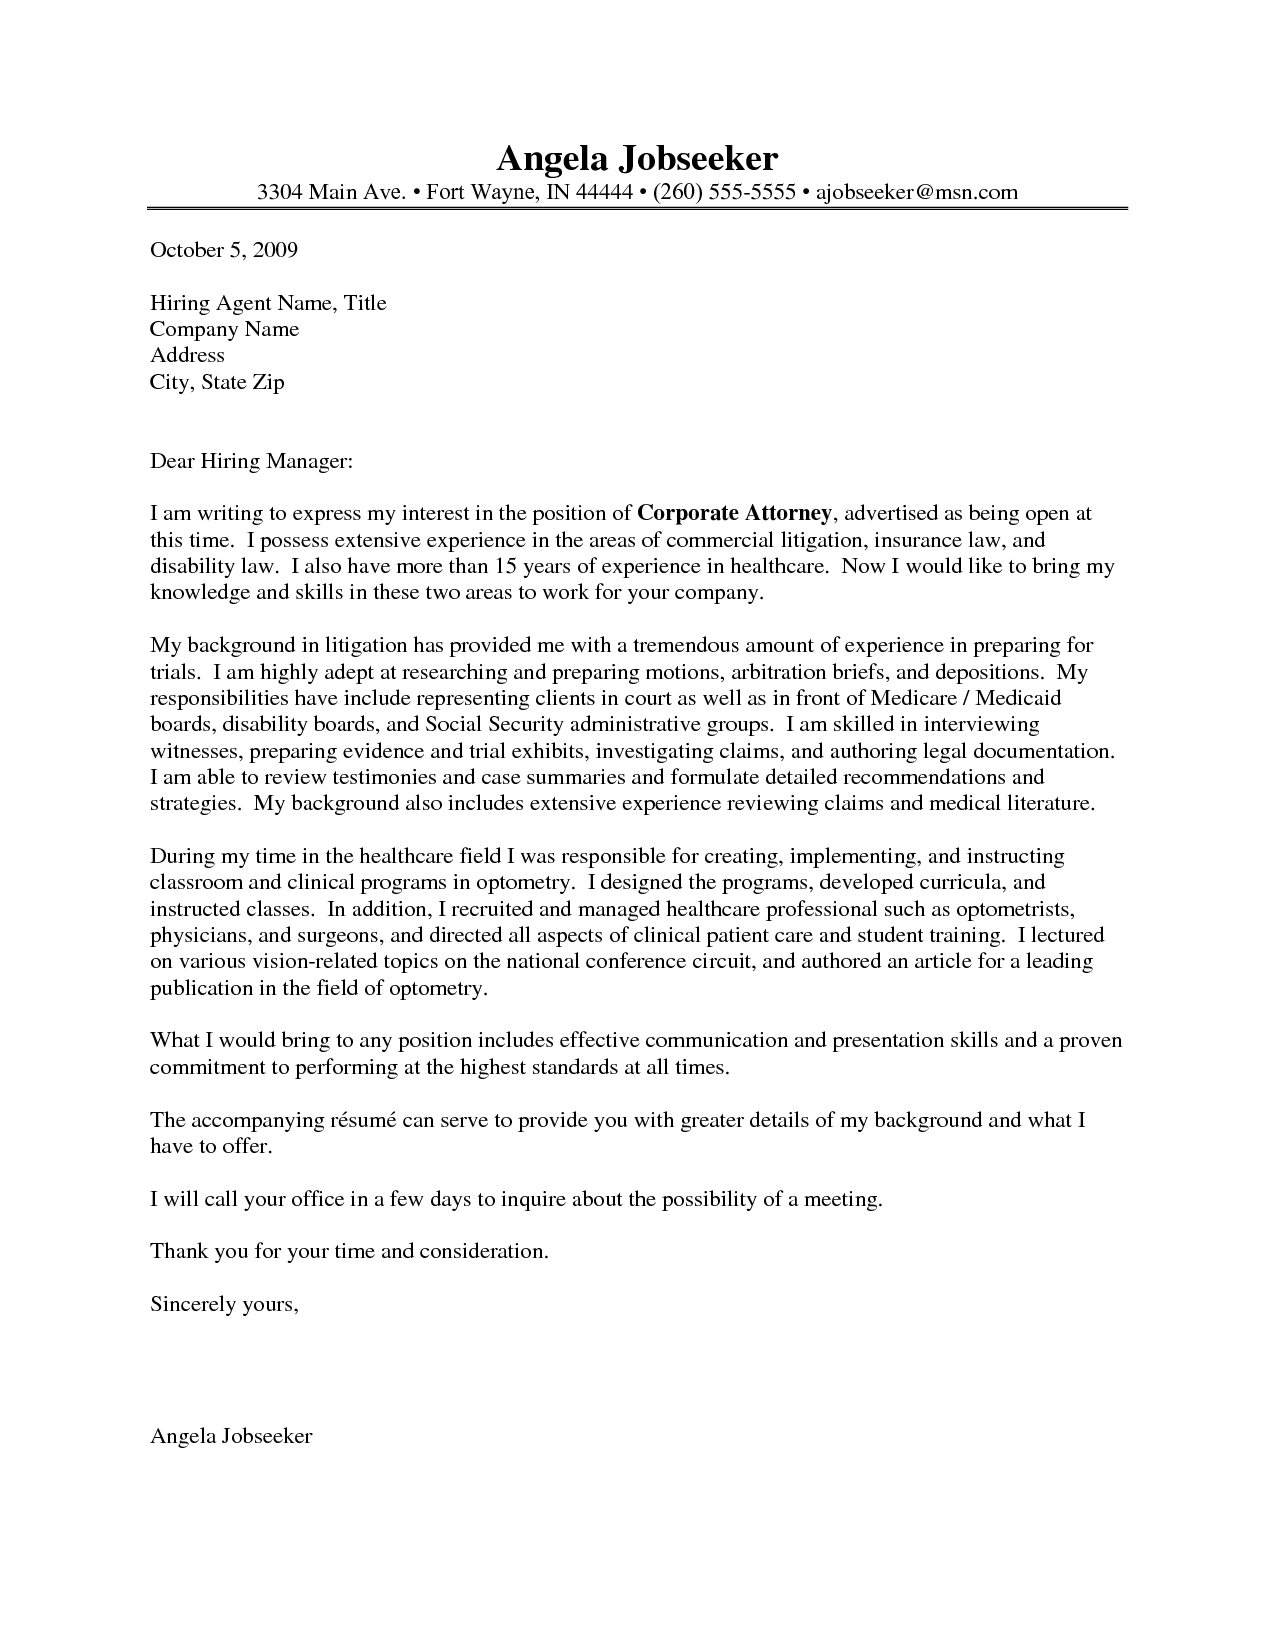 Lawyer Cover Letter Template Examples Cover Letter Examples Free Sample Letter And Cover Letter Hd Free Cover Letter Example Cover Letter Cover Letter Format